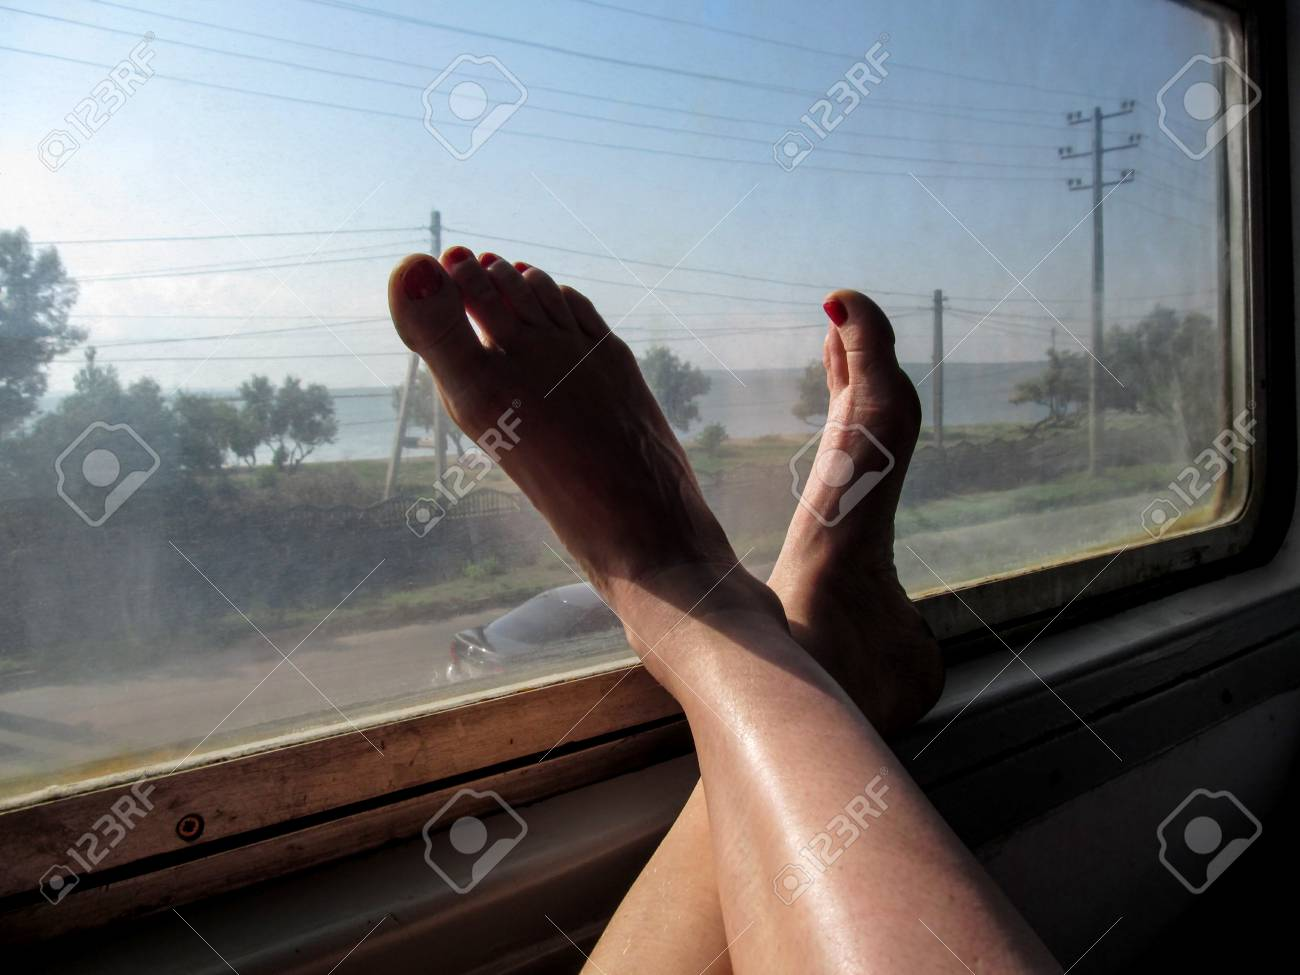 Stock Photo The Concept Of Travel With Convenience Female Feet In The Train Window Window Of Public Transport Womens Legs With A Red Pedicure